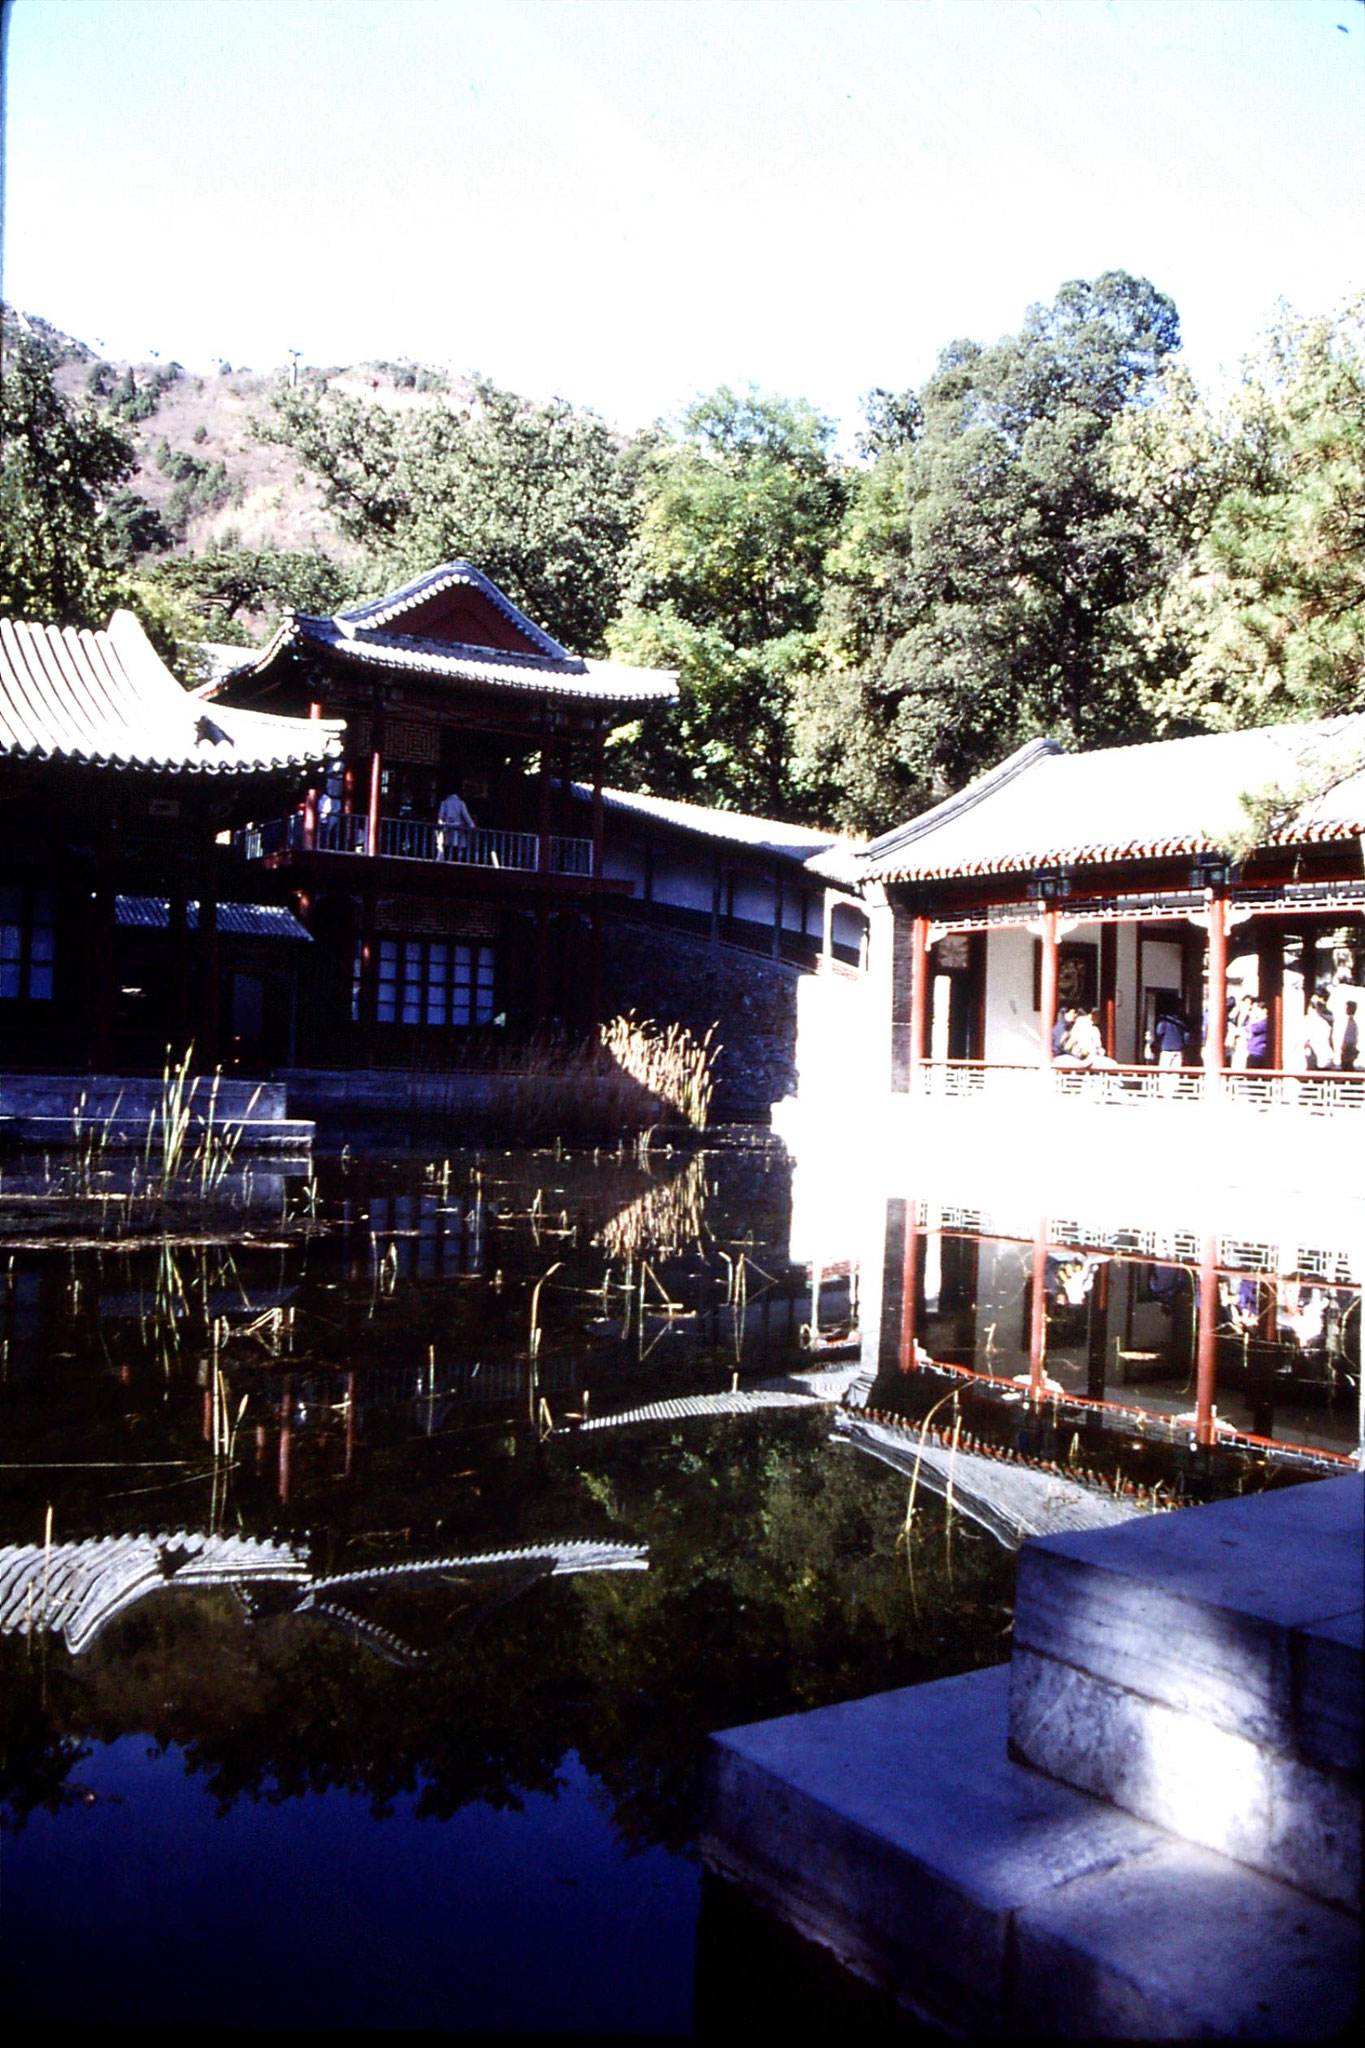 6/11/1988: 29: outing to Xiangshan